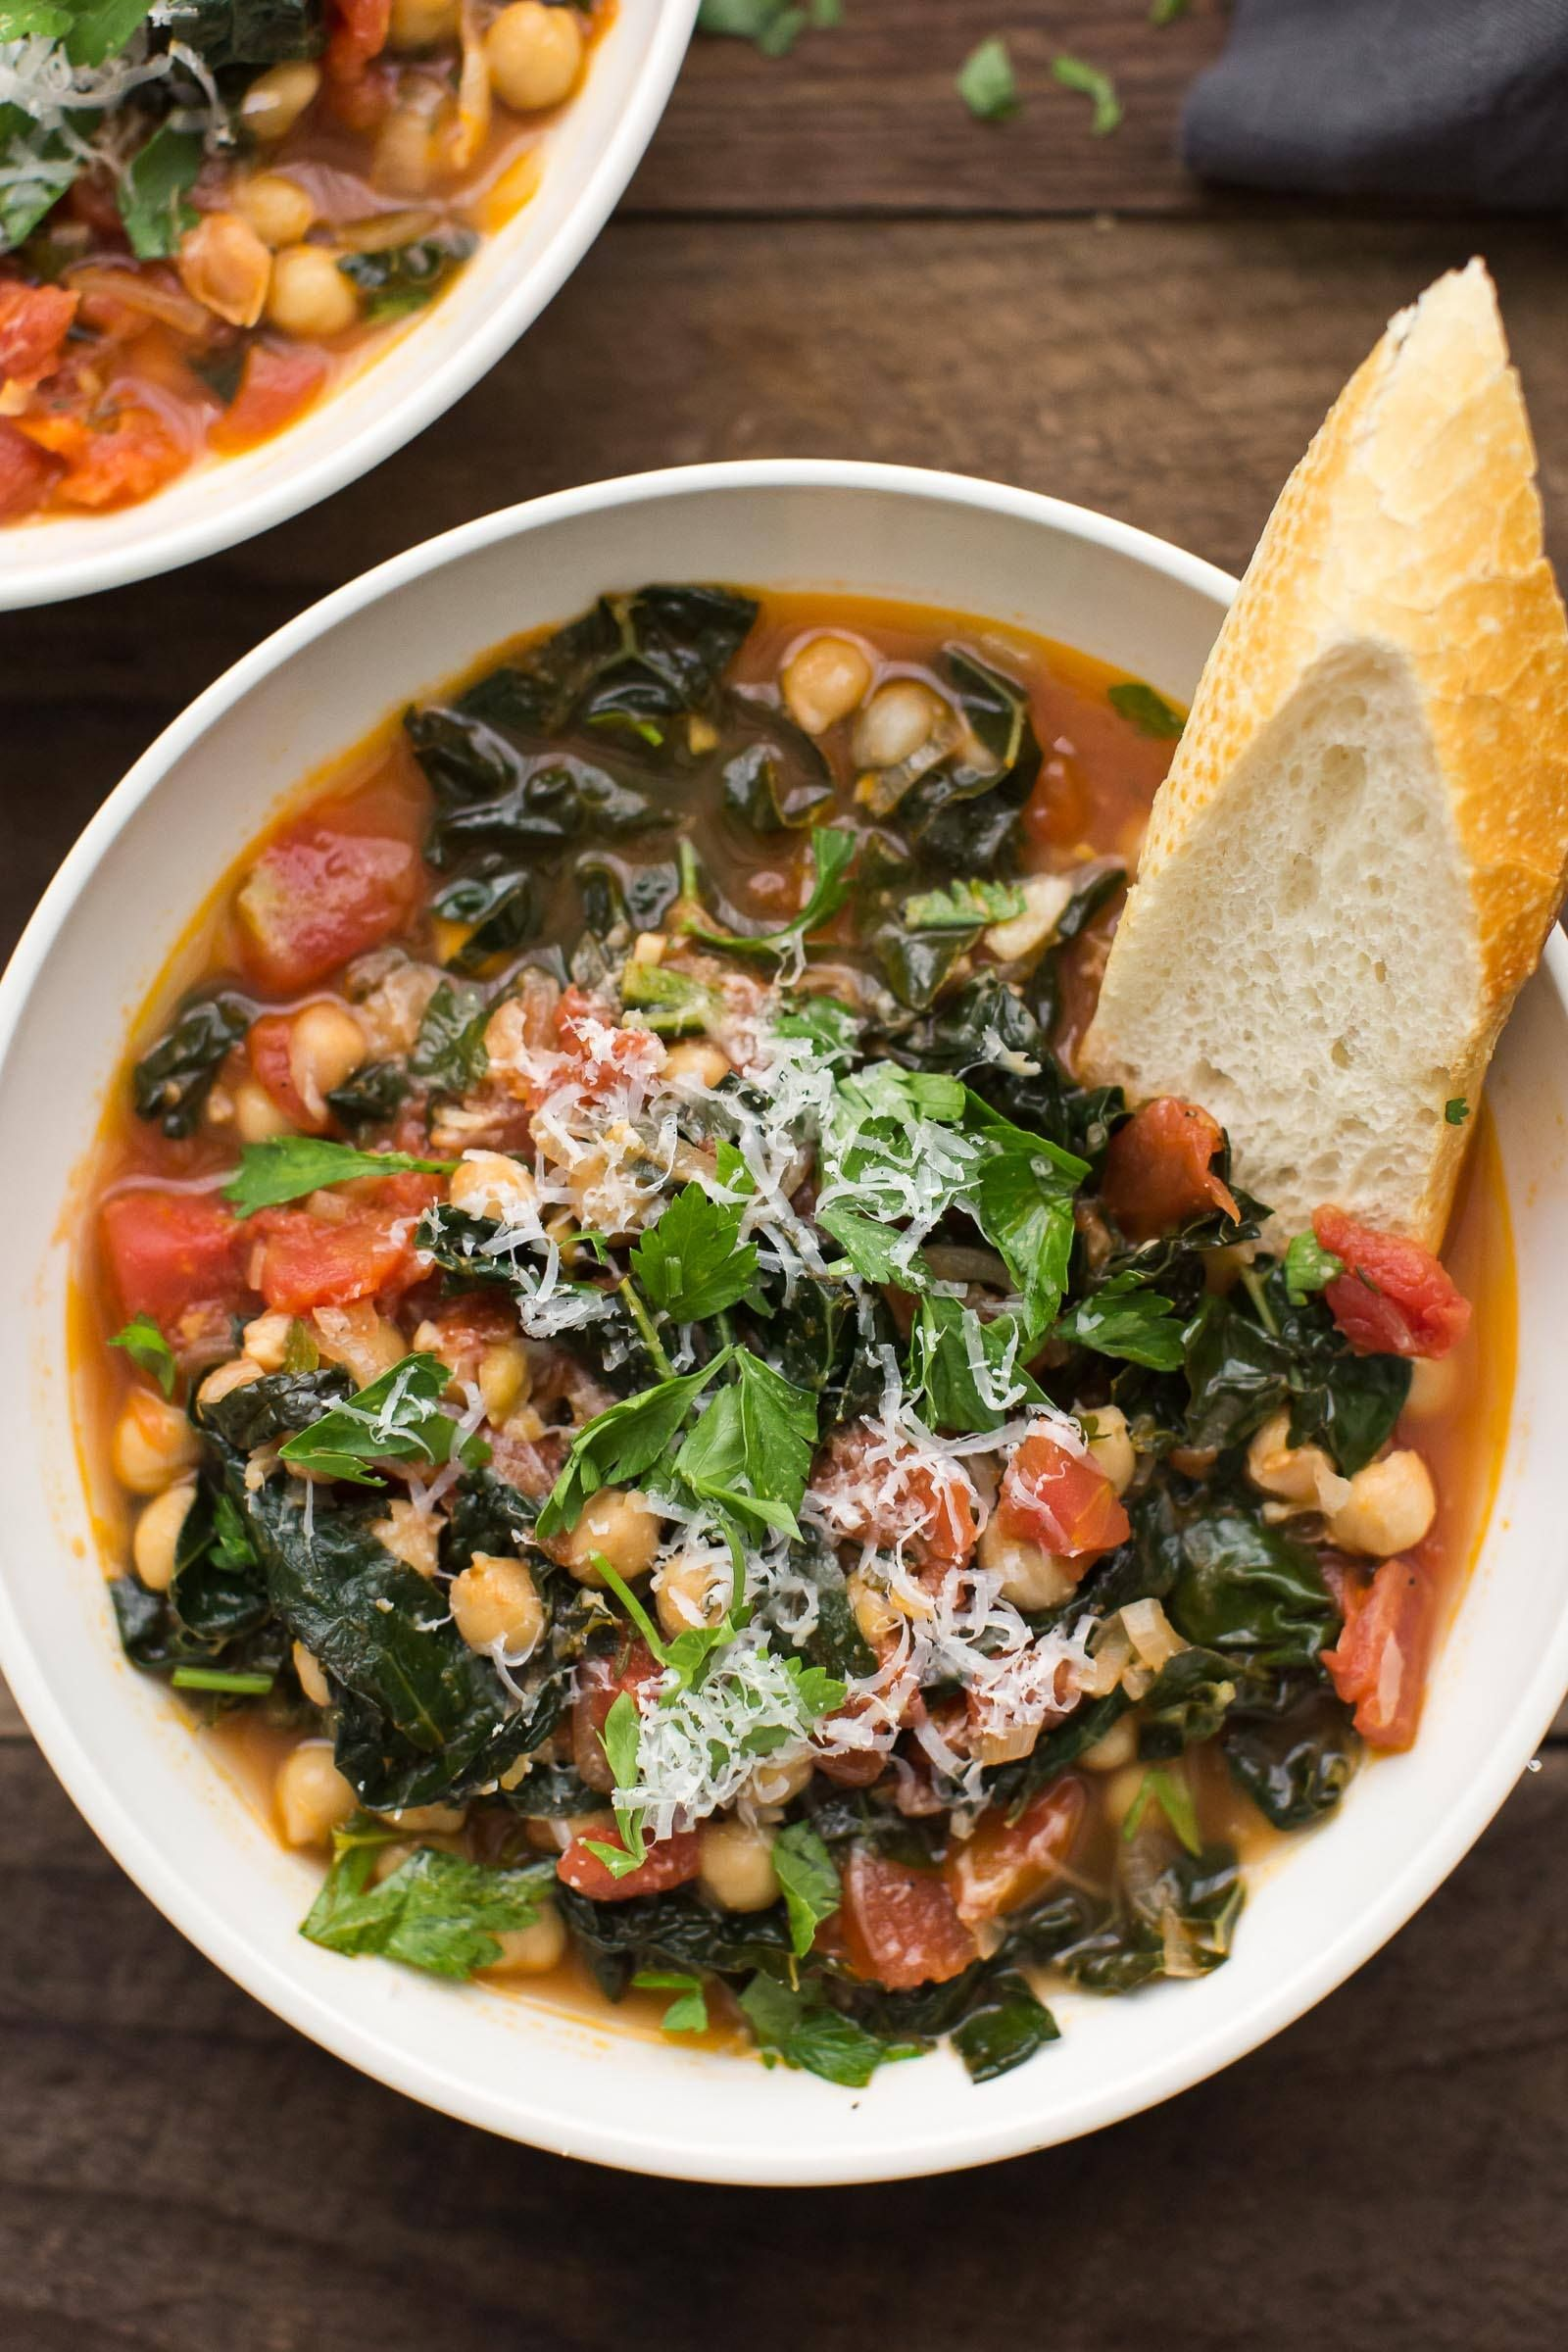 Tomato, Kale, and Chickpea Stew with Parmesan| Naturally Ella